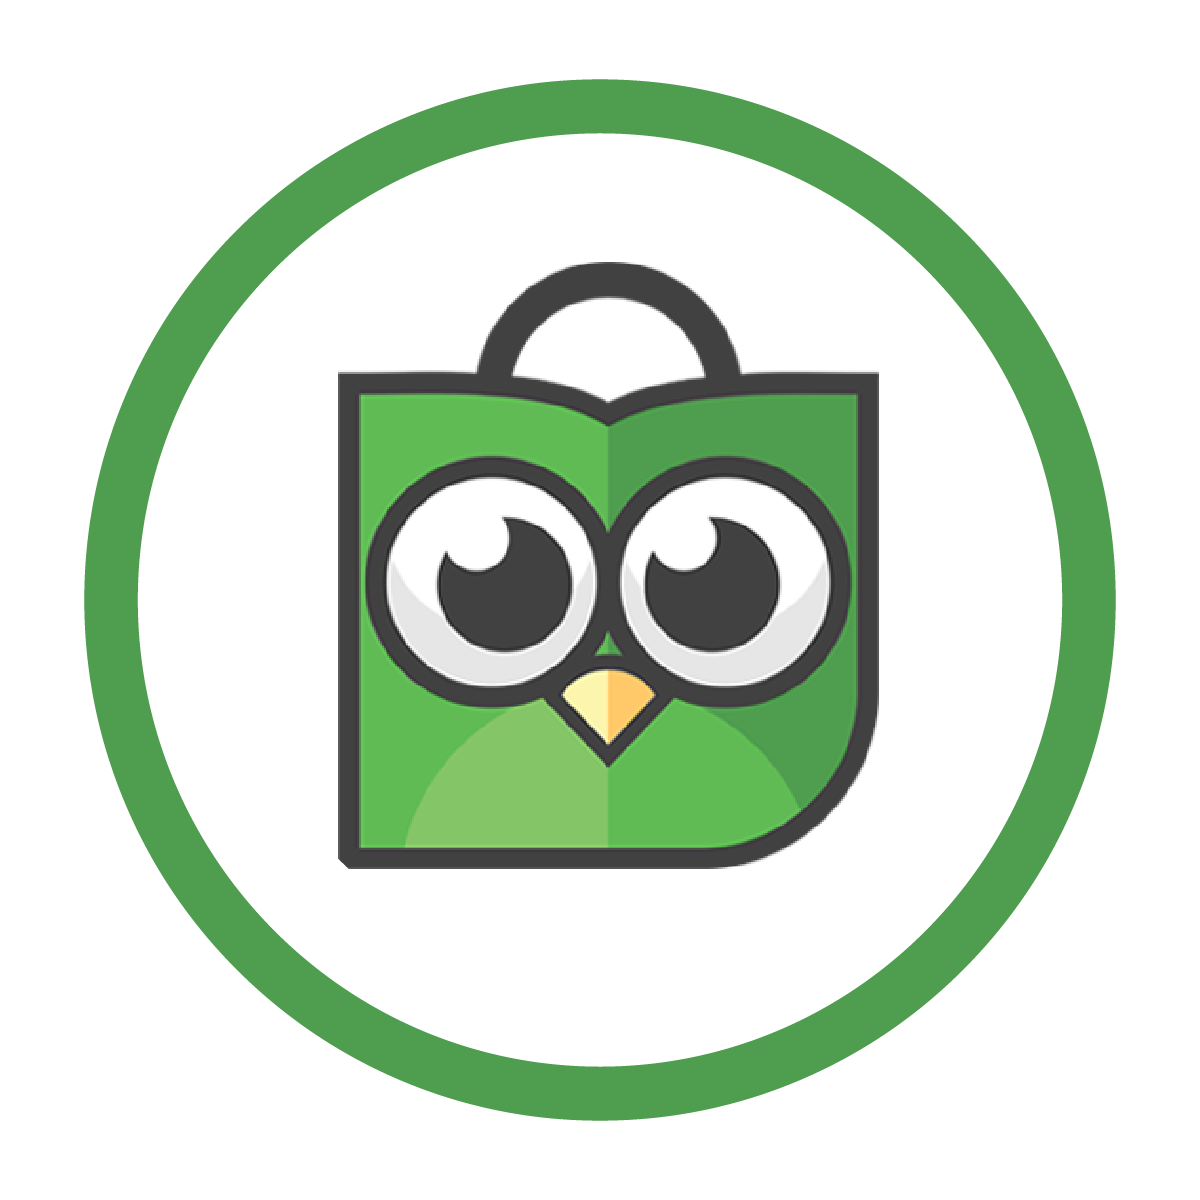 icon tokopedia png 7 png image 1476472 png images pngio icon tokopedia png 7 png image